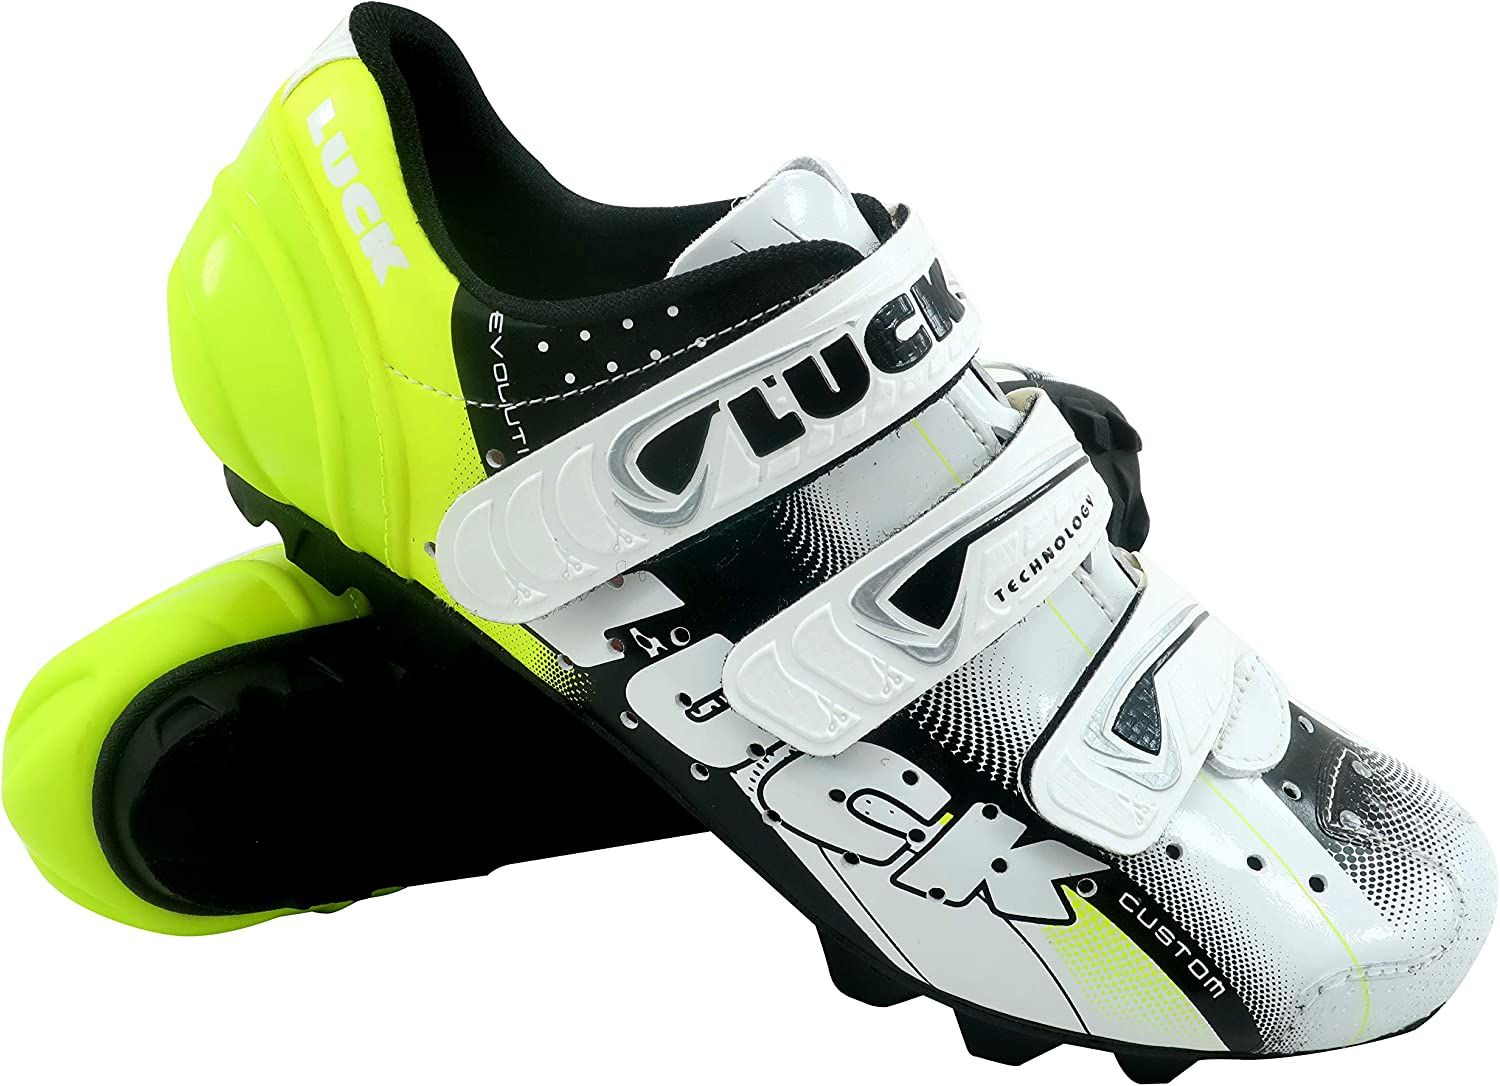 Luck Extreme Washington Mall 3.0 MTB Cycling Shoes and Sole Selling selling Triple with Carbon V